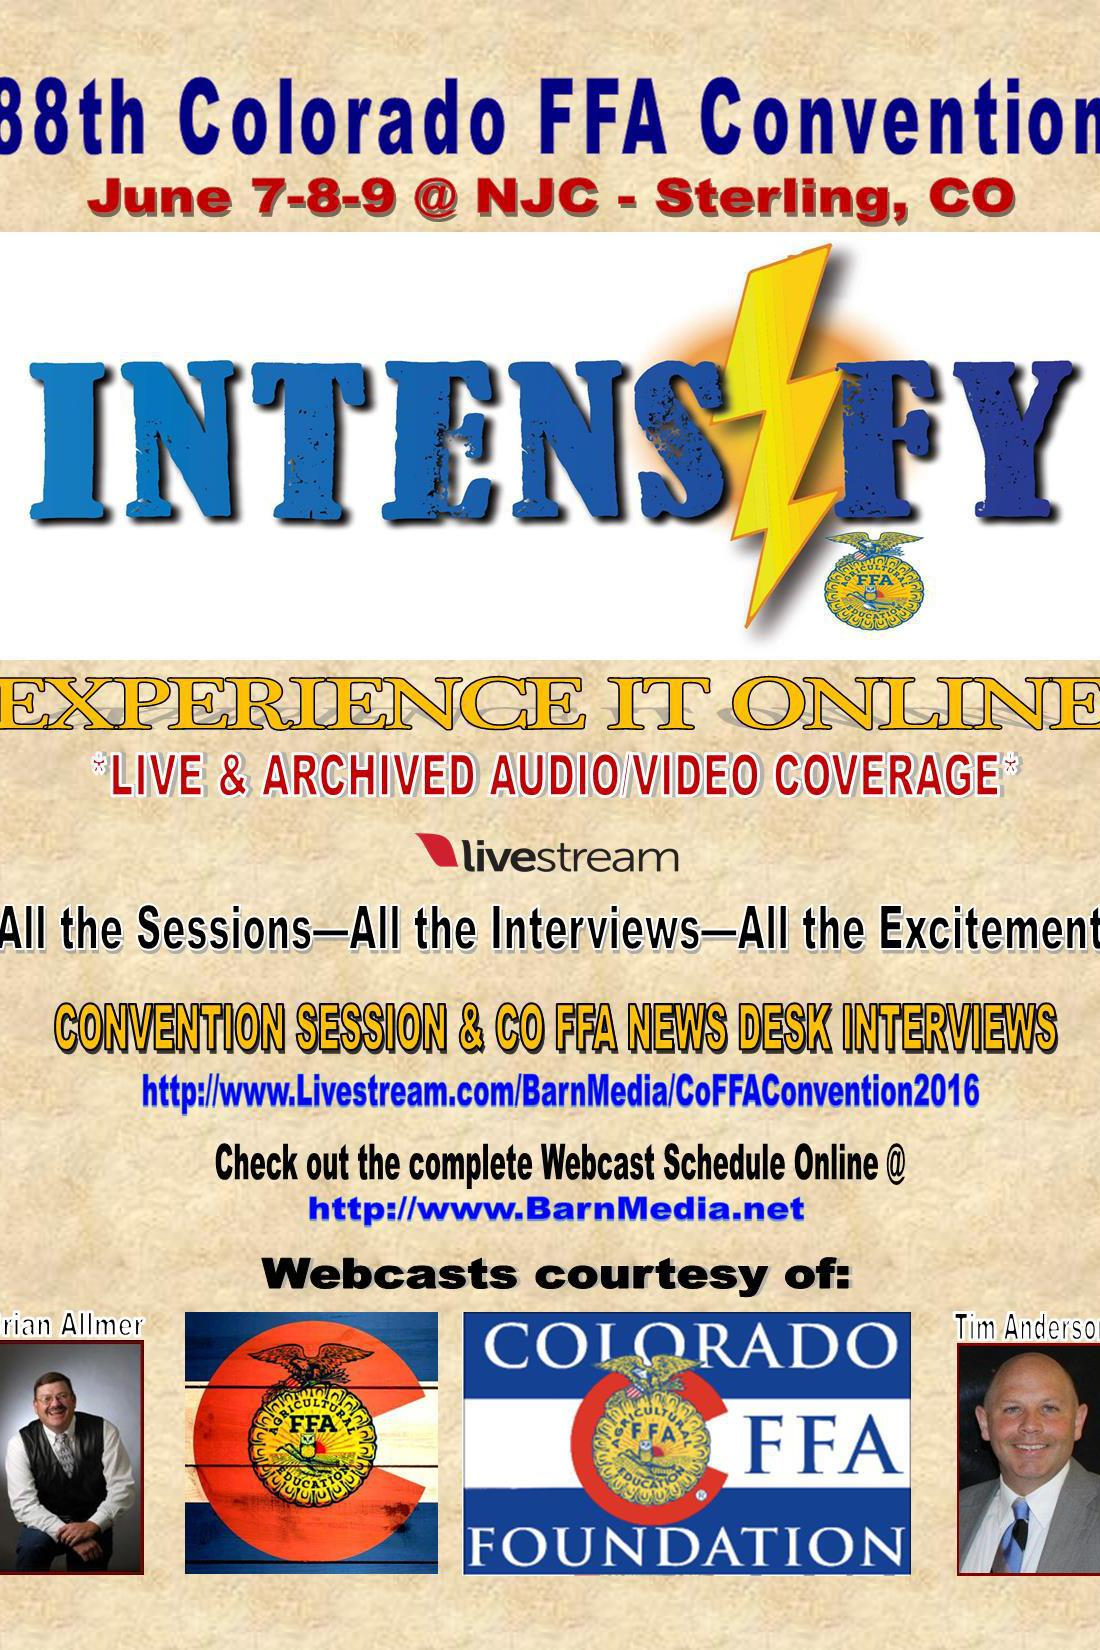 2016 co ffa state convention on livestream